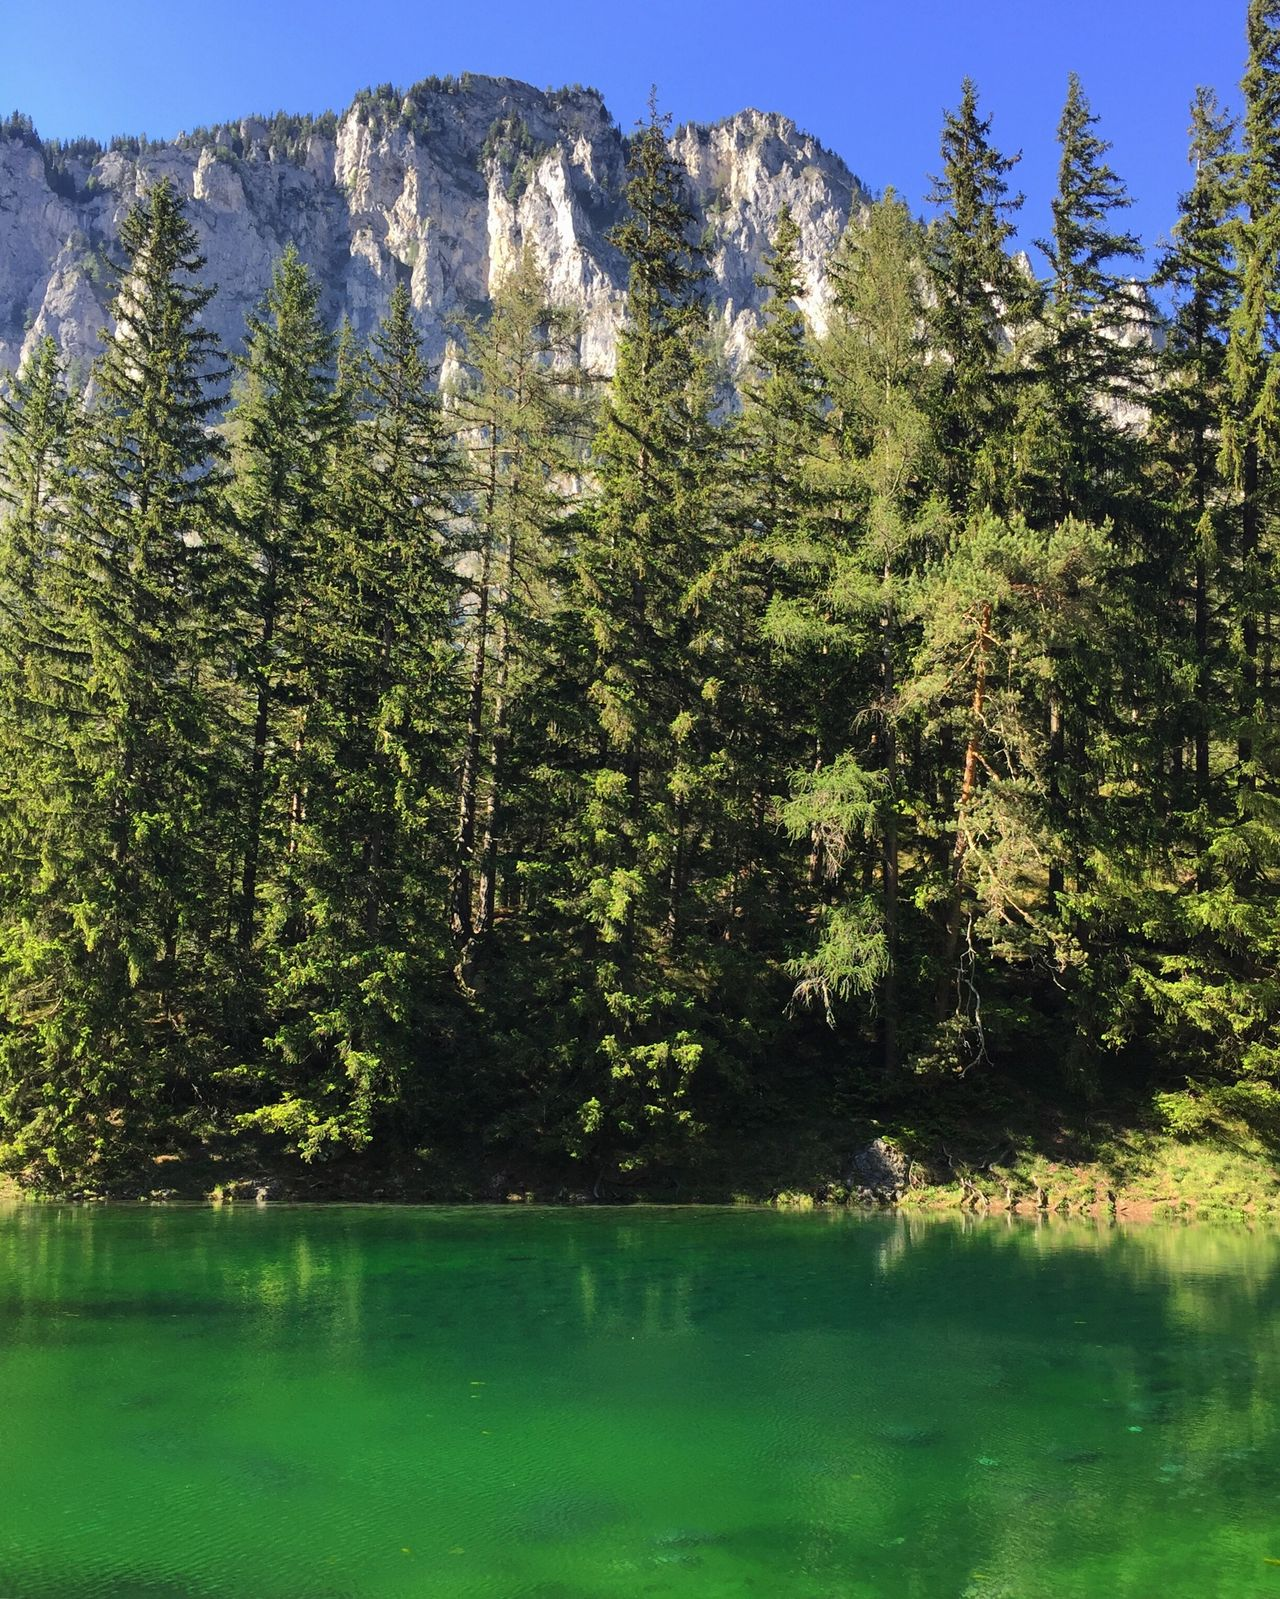 Tree Forest Nature Beauty In Nature Scenics No People Pine Tree Mountain Tranquility Day Water Reflection Green Color Outdoors Tranquil Scene Growth Lake Landscape Plant Sky